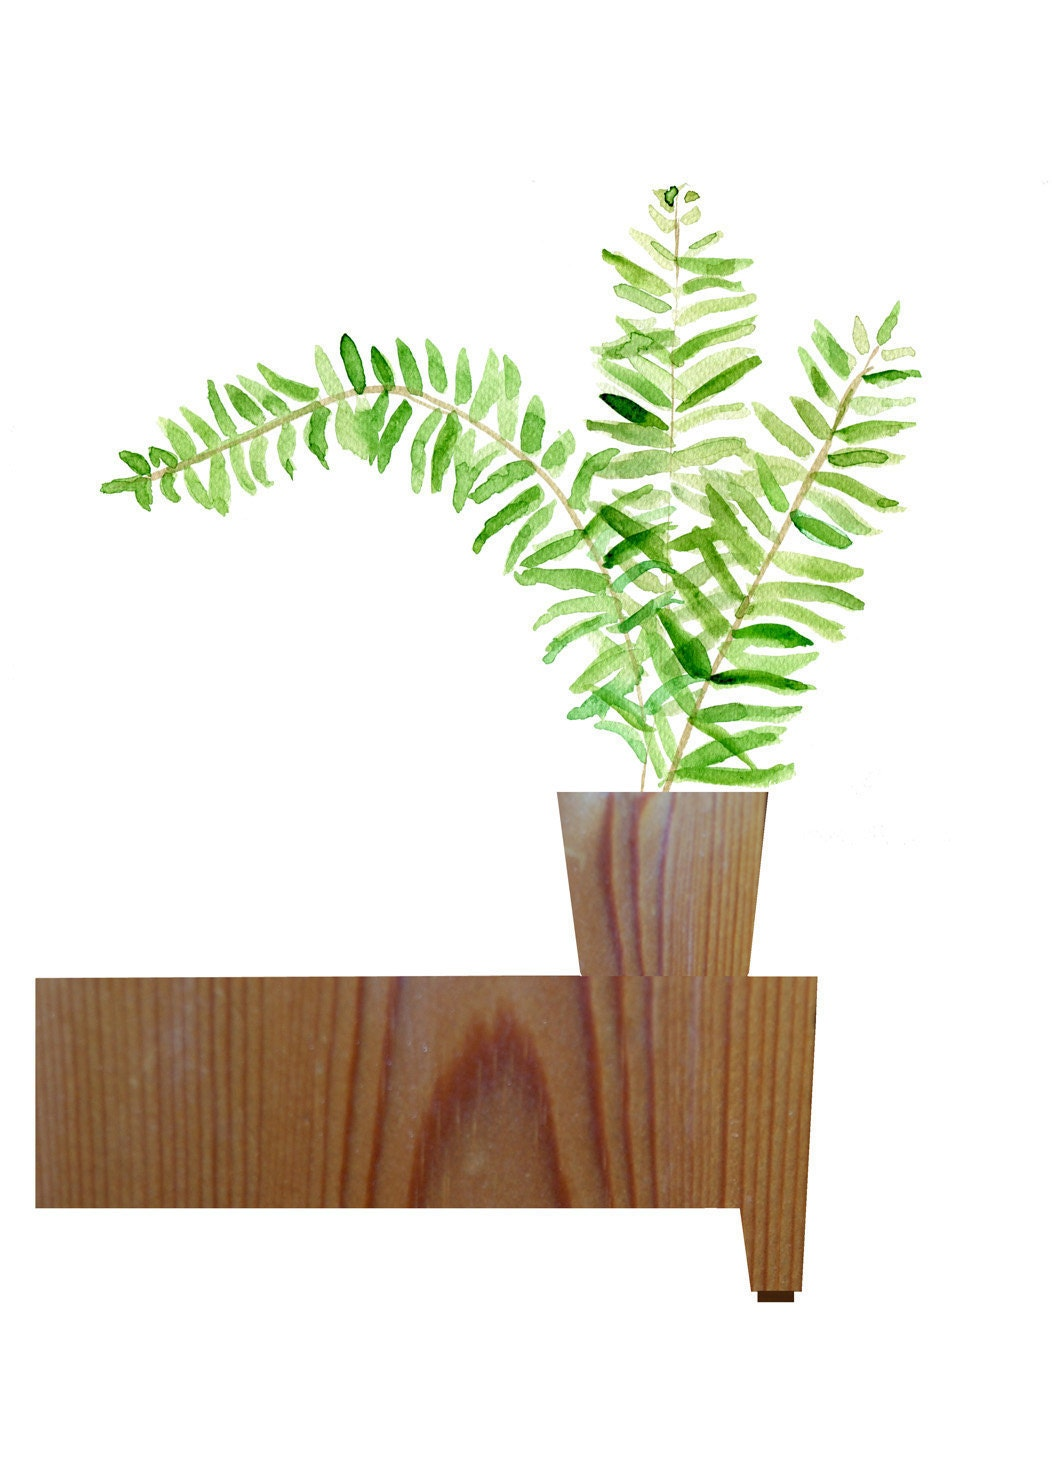 Art print Fern on a wood table 16X11 Minimalist Digital Collage , modern ,zen,  brown green, Ofiice decor, Wall decor, by thejoyofcolor - TheJoyofColor